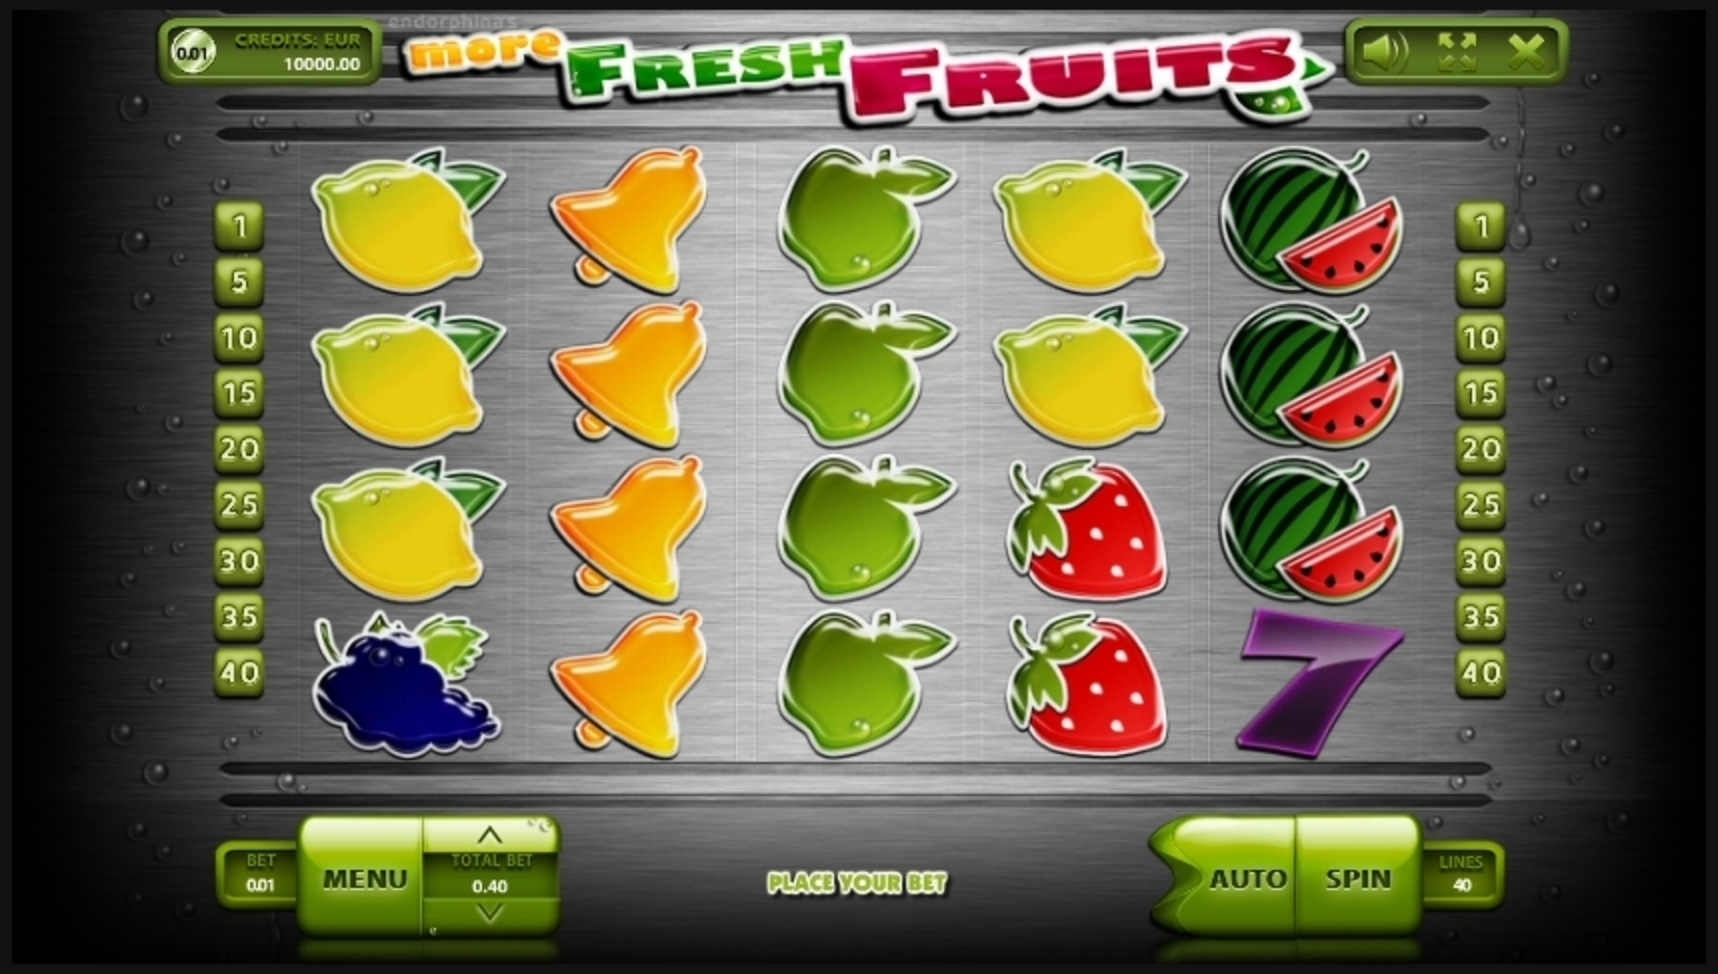 Reels in More Fresh Fruits Slot Game by Endorphina